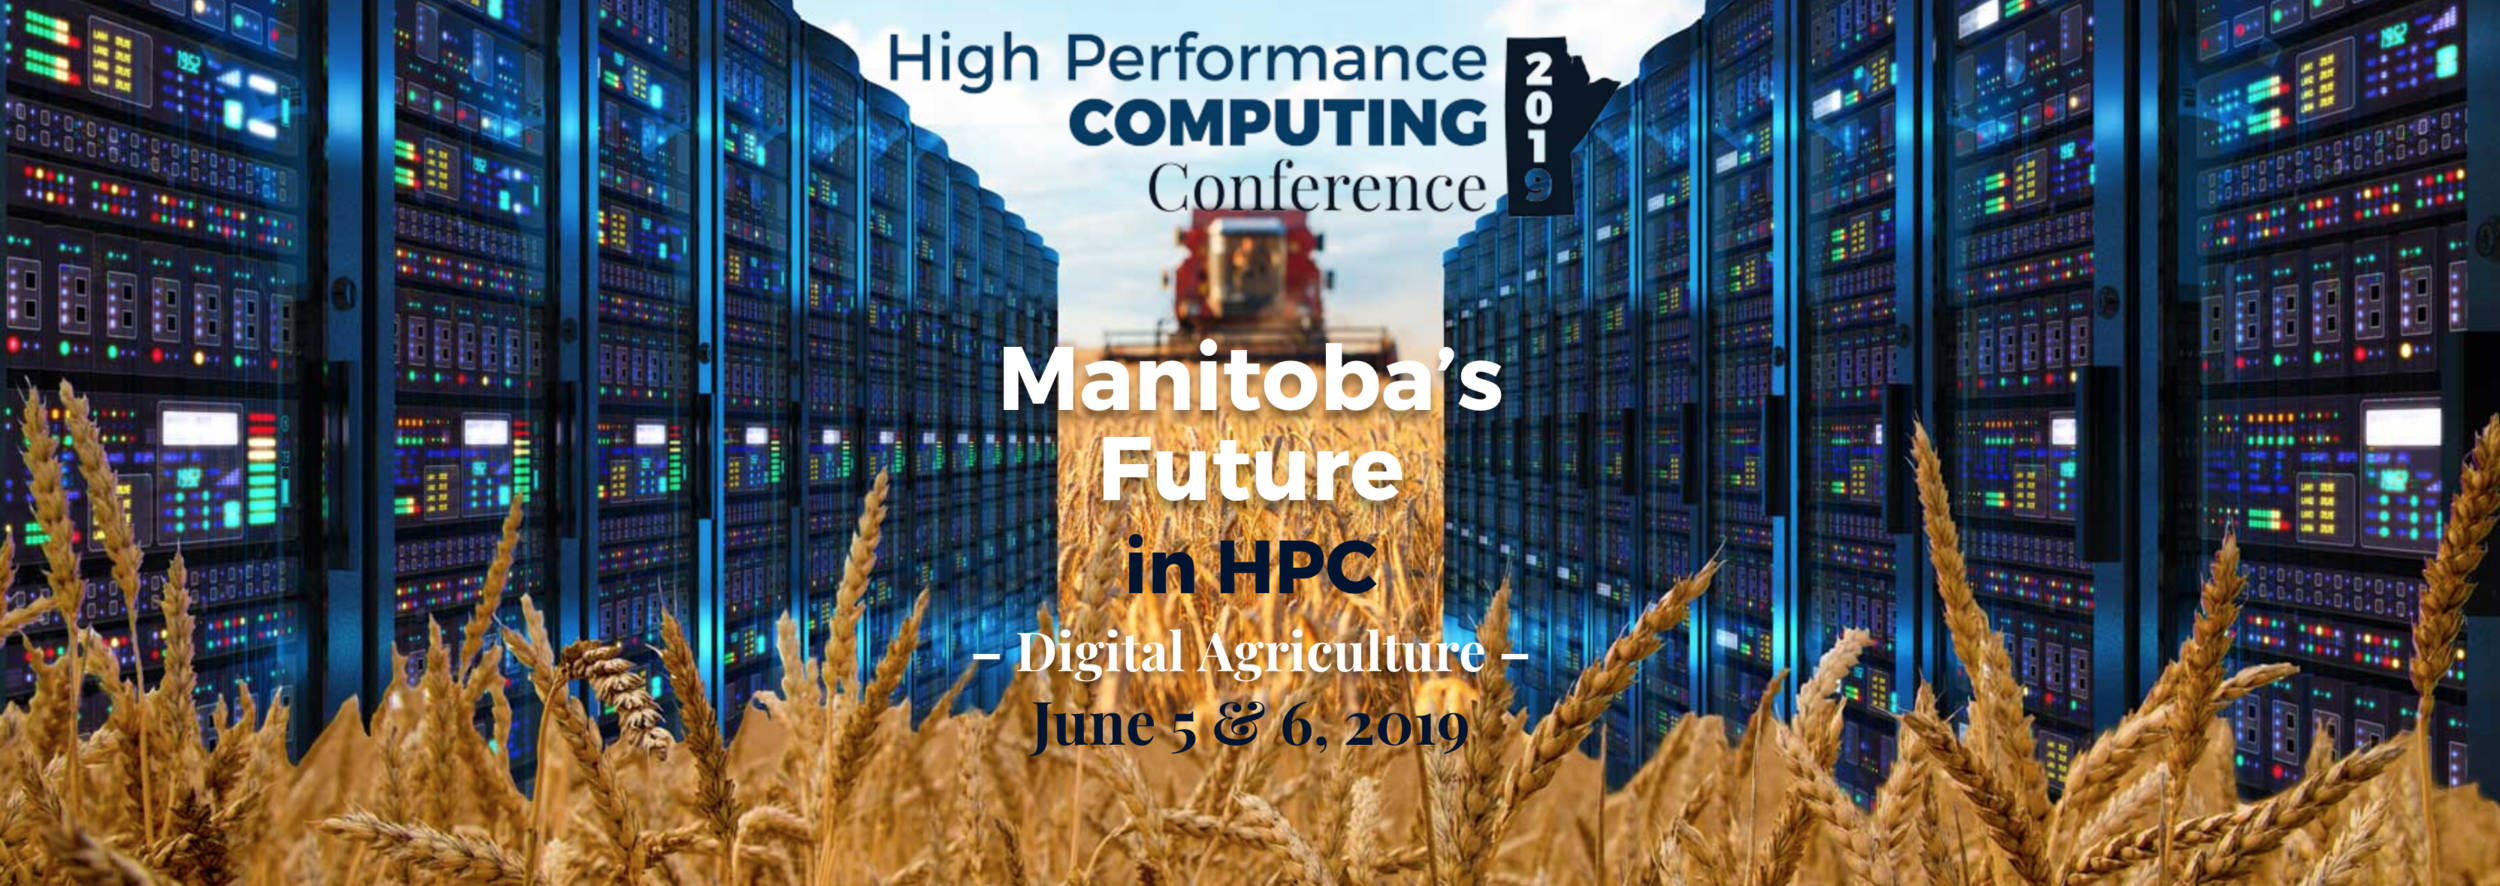 high-performance-computing-conference